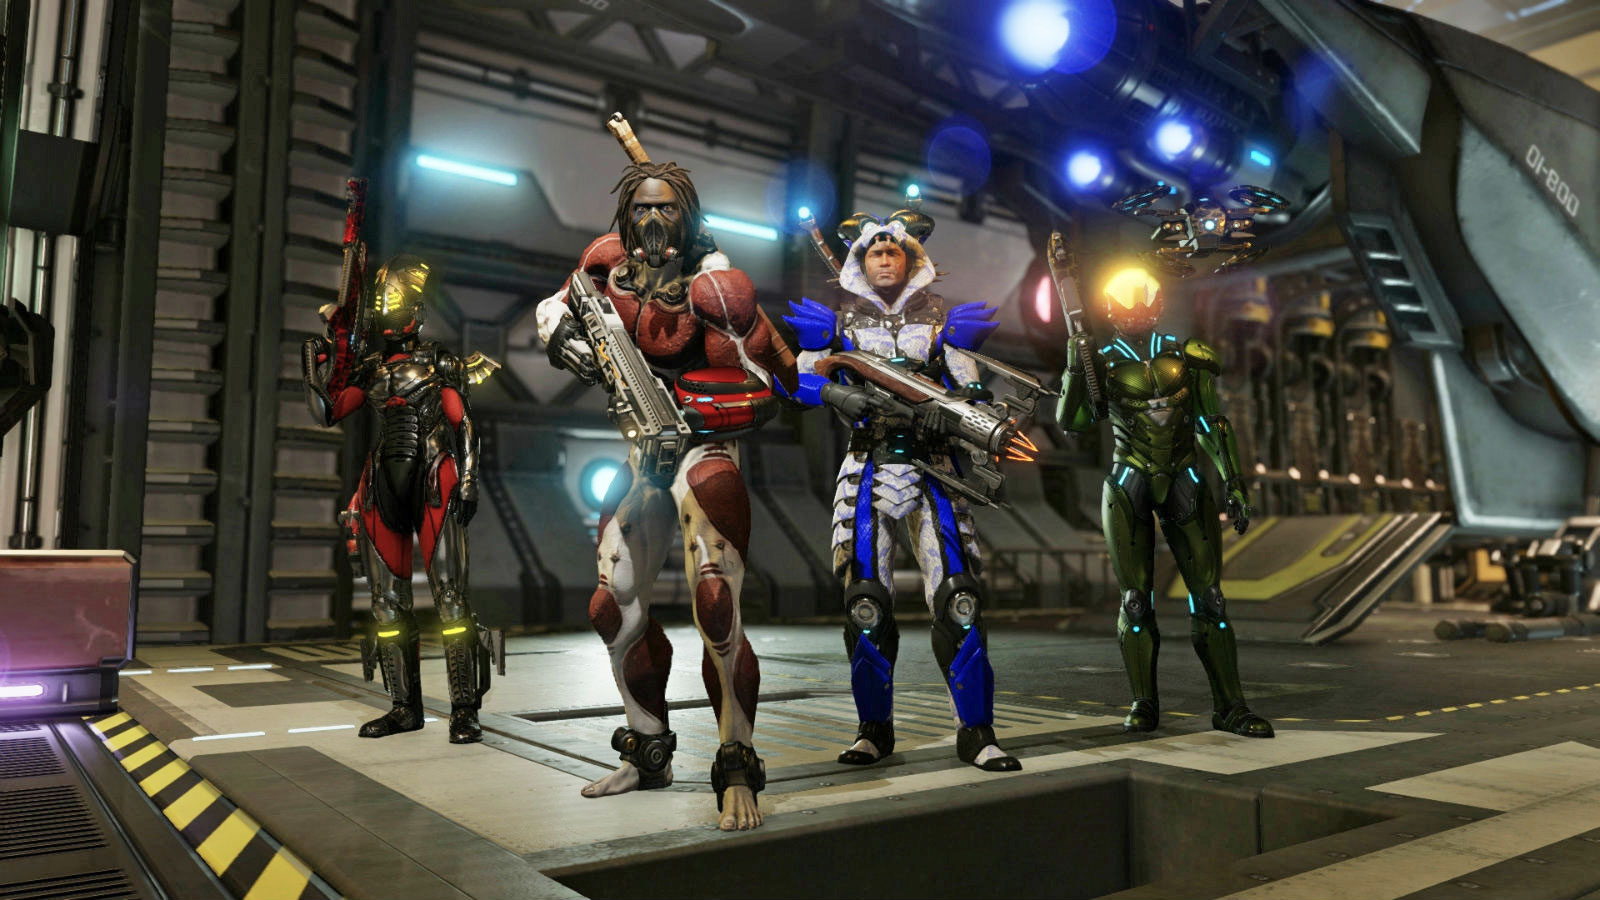 The second 'XCOM 2' DLC pack arrives May 12th